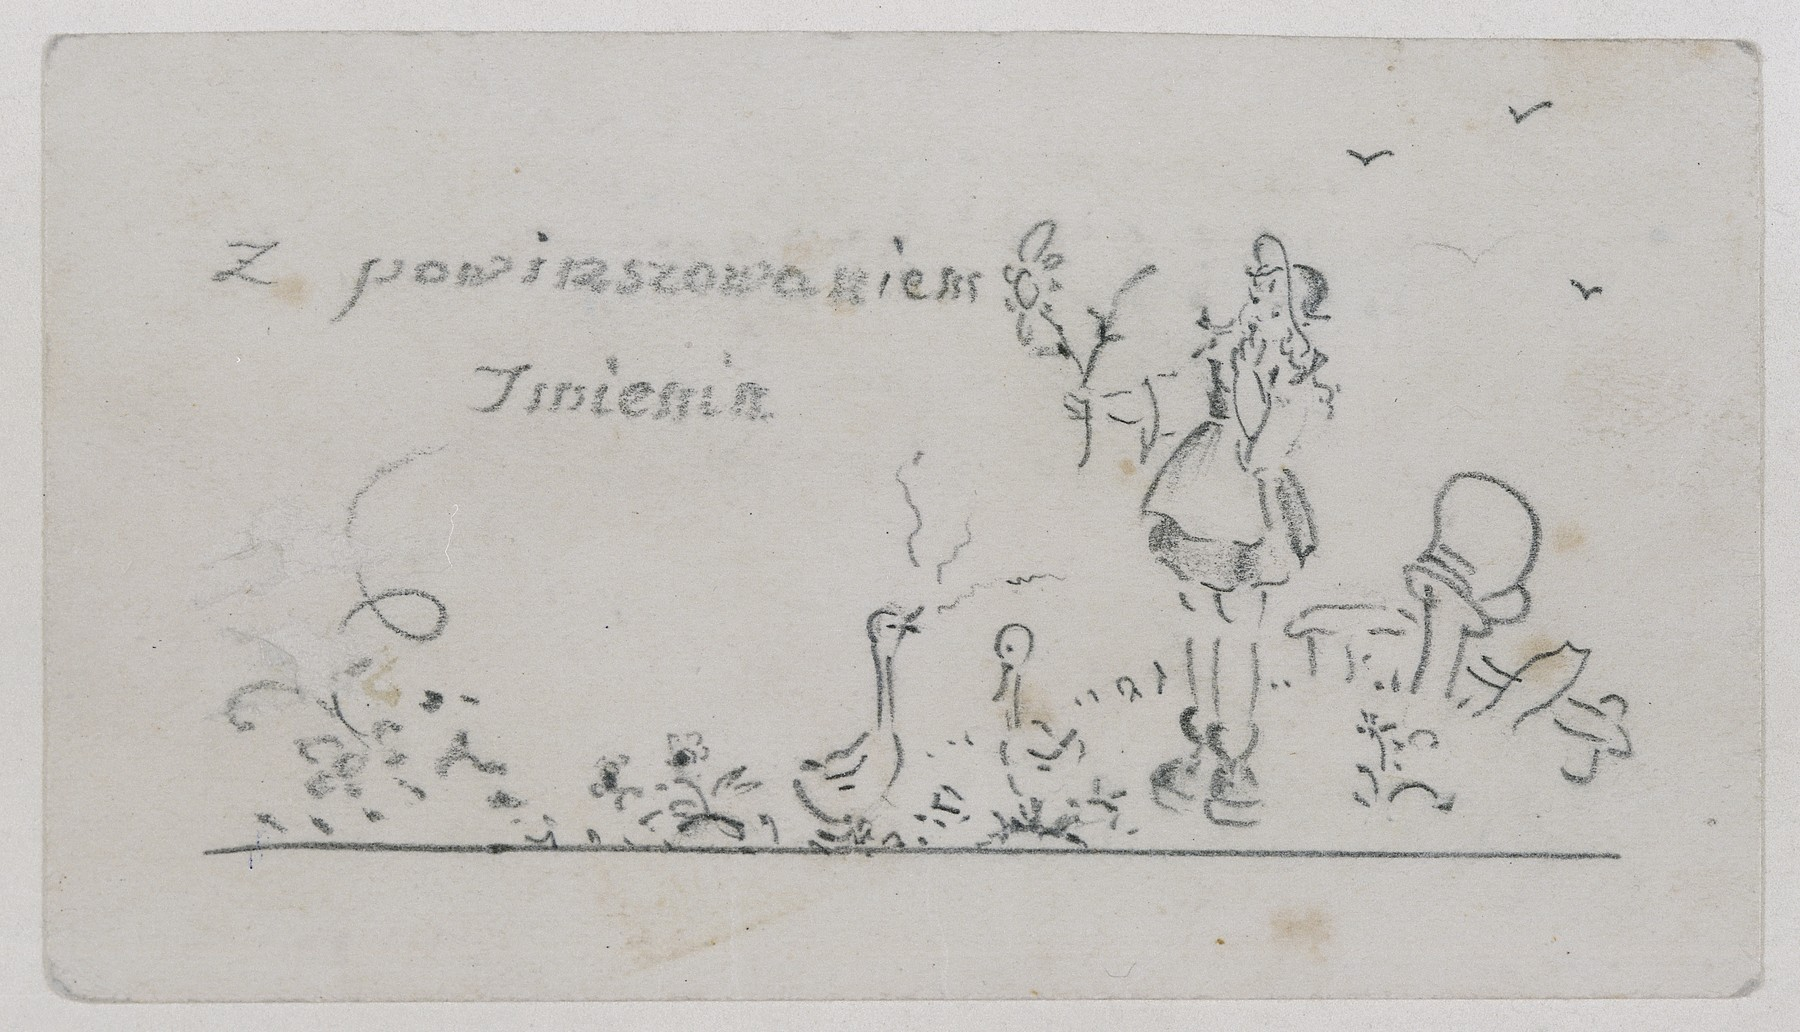 Greeting card given to Jadwiga Dzido on her name day by two fellow inmates of the Ravensbrueck concentration camp.